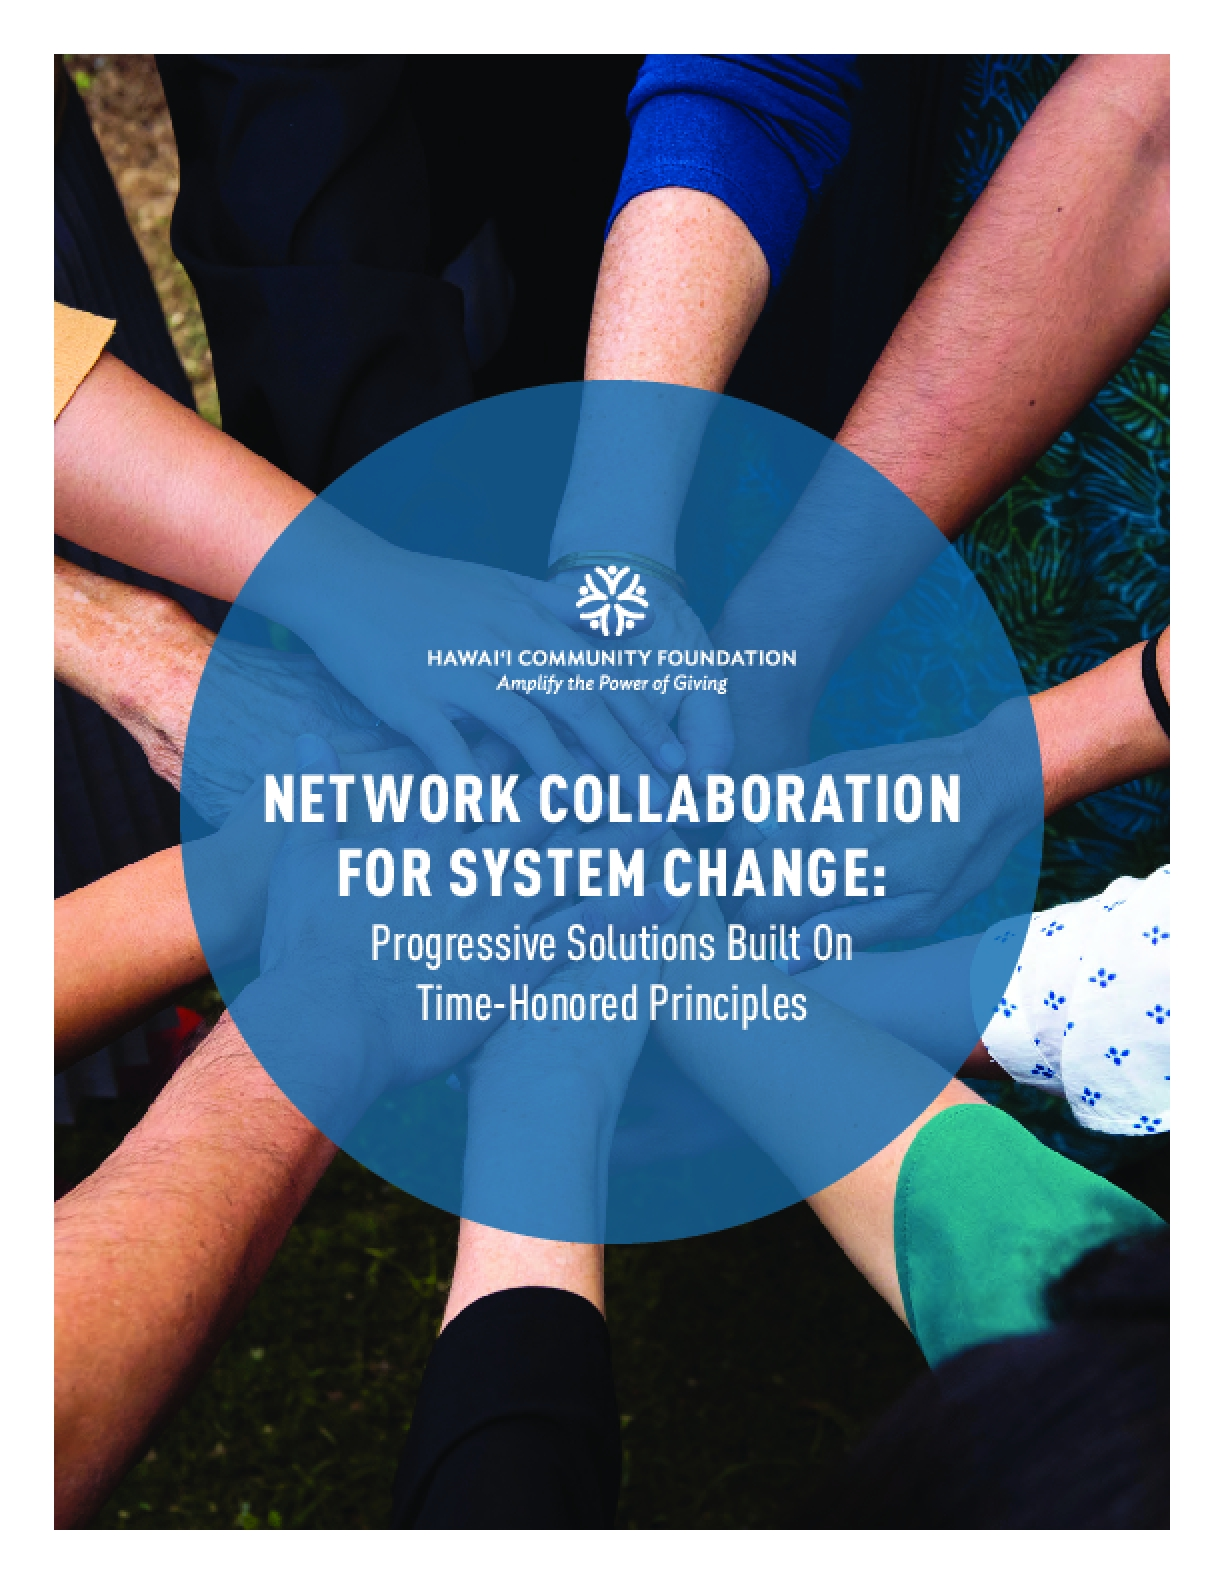 Network Collaboration for System Change: Progressive Solutions Built On Time-Honored Principles